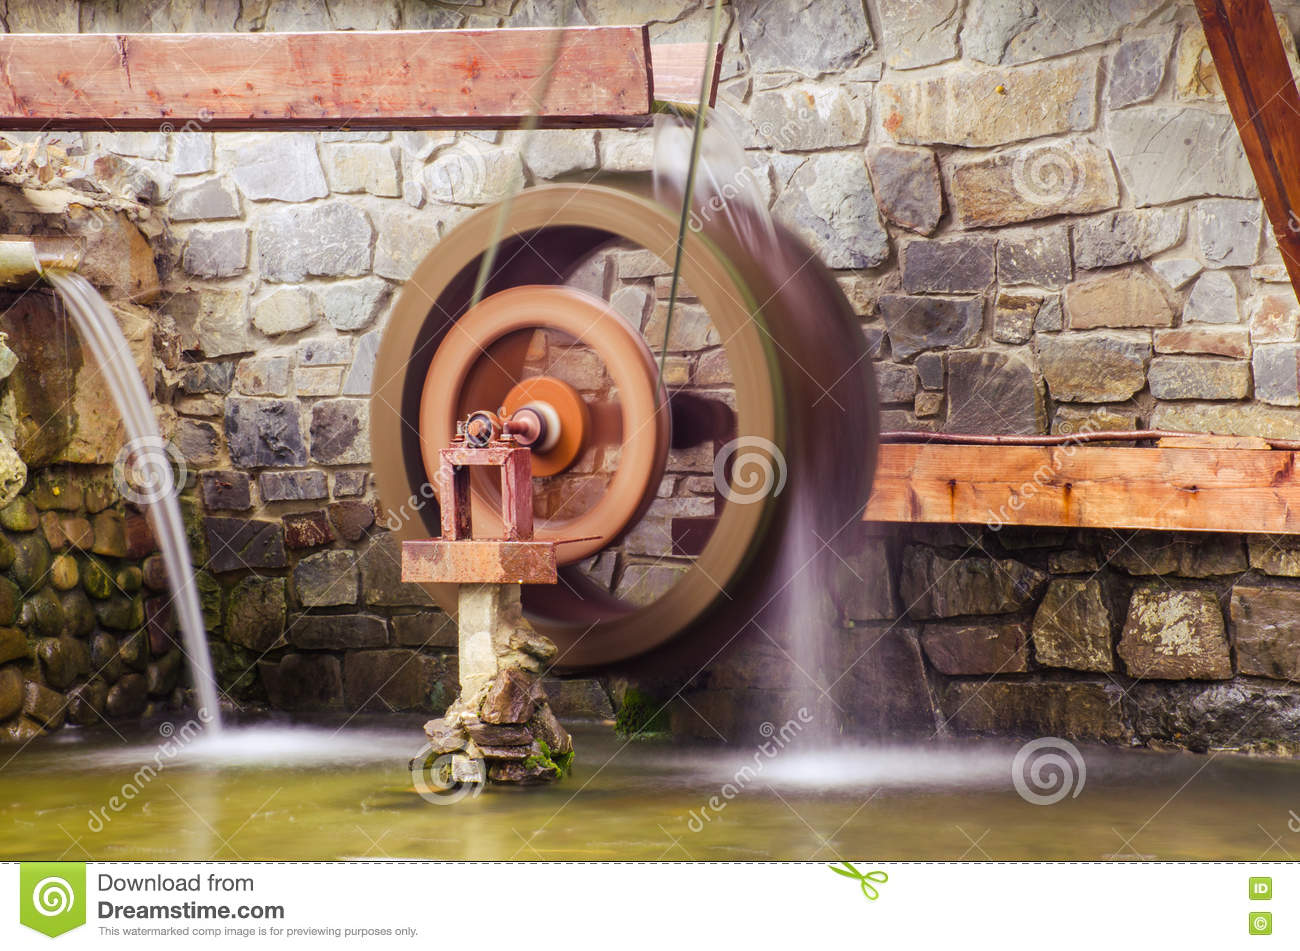 Water Building Material : Water mill stone in stony wall from nature material